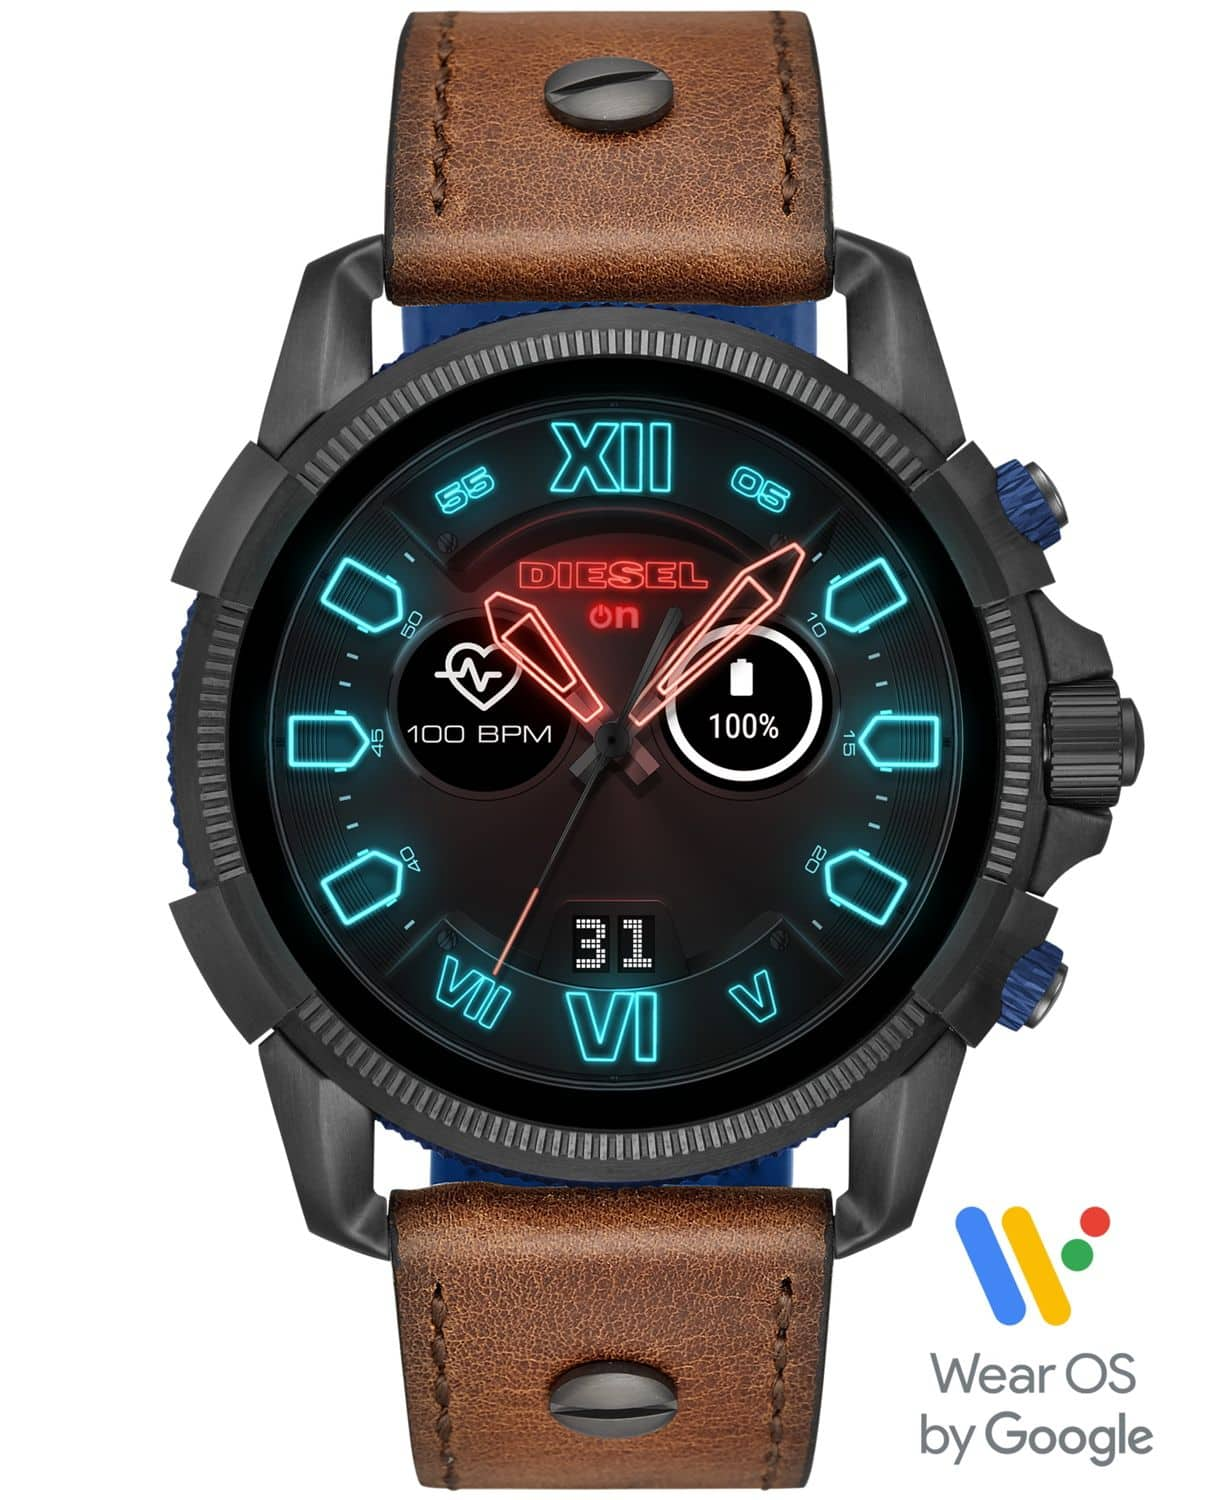 Diesel On Full Guard 2.5 SmartWatch $199 + Free Shipping or In Store Pickup